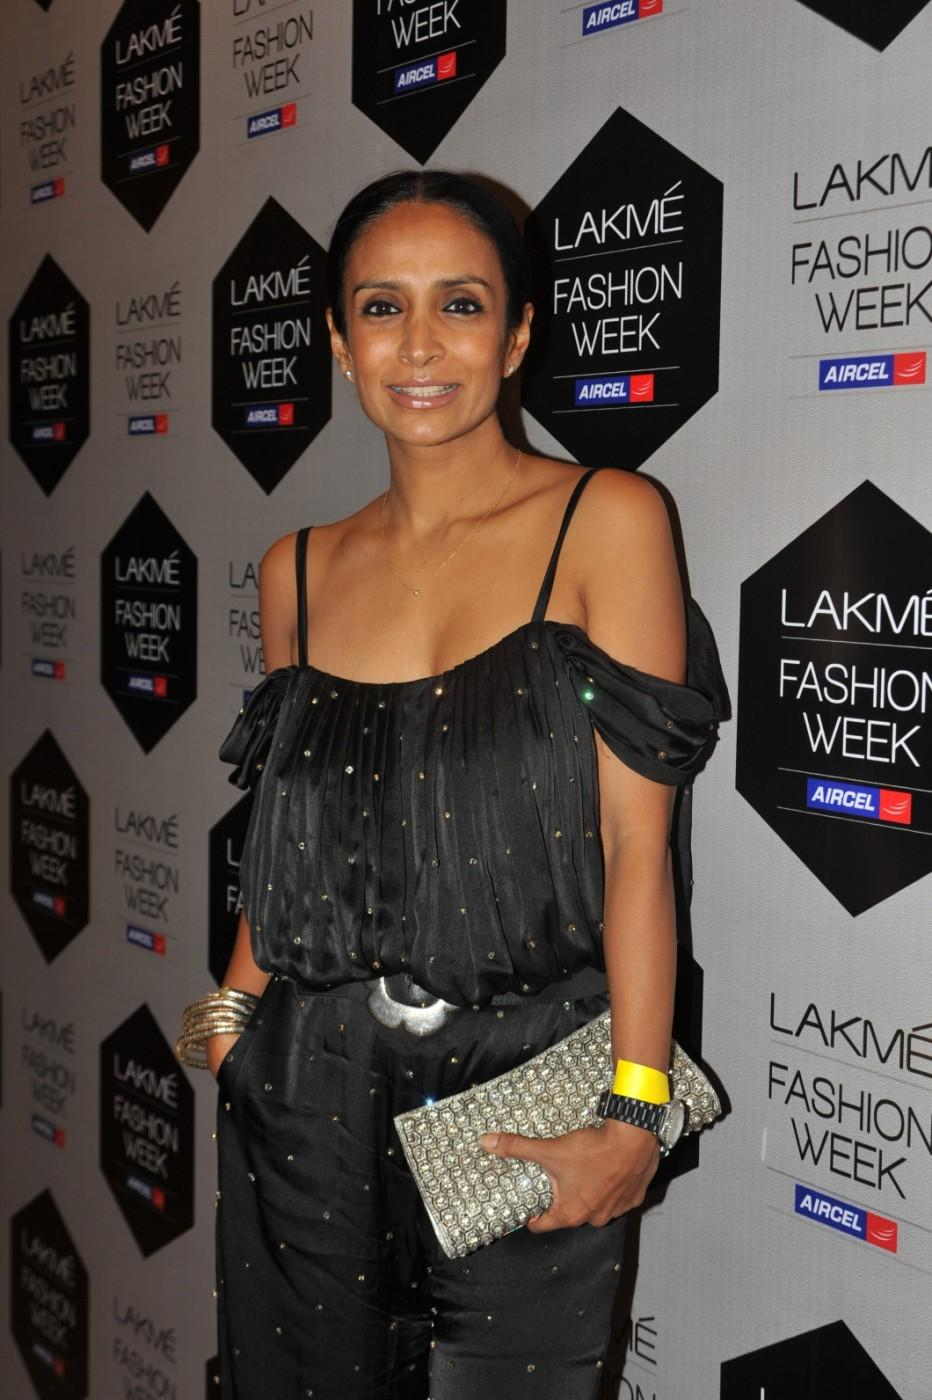 Geeta Basra - Lakme Fashion Week 2012 Day 5 Photo